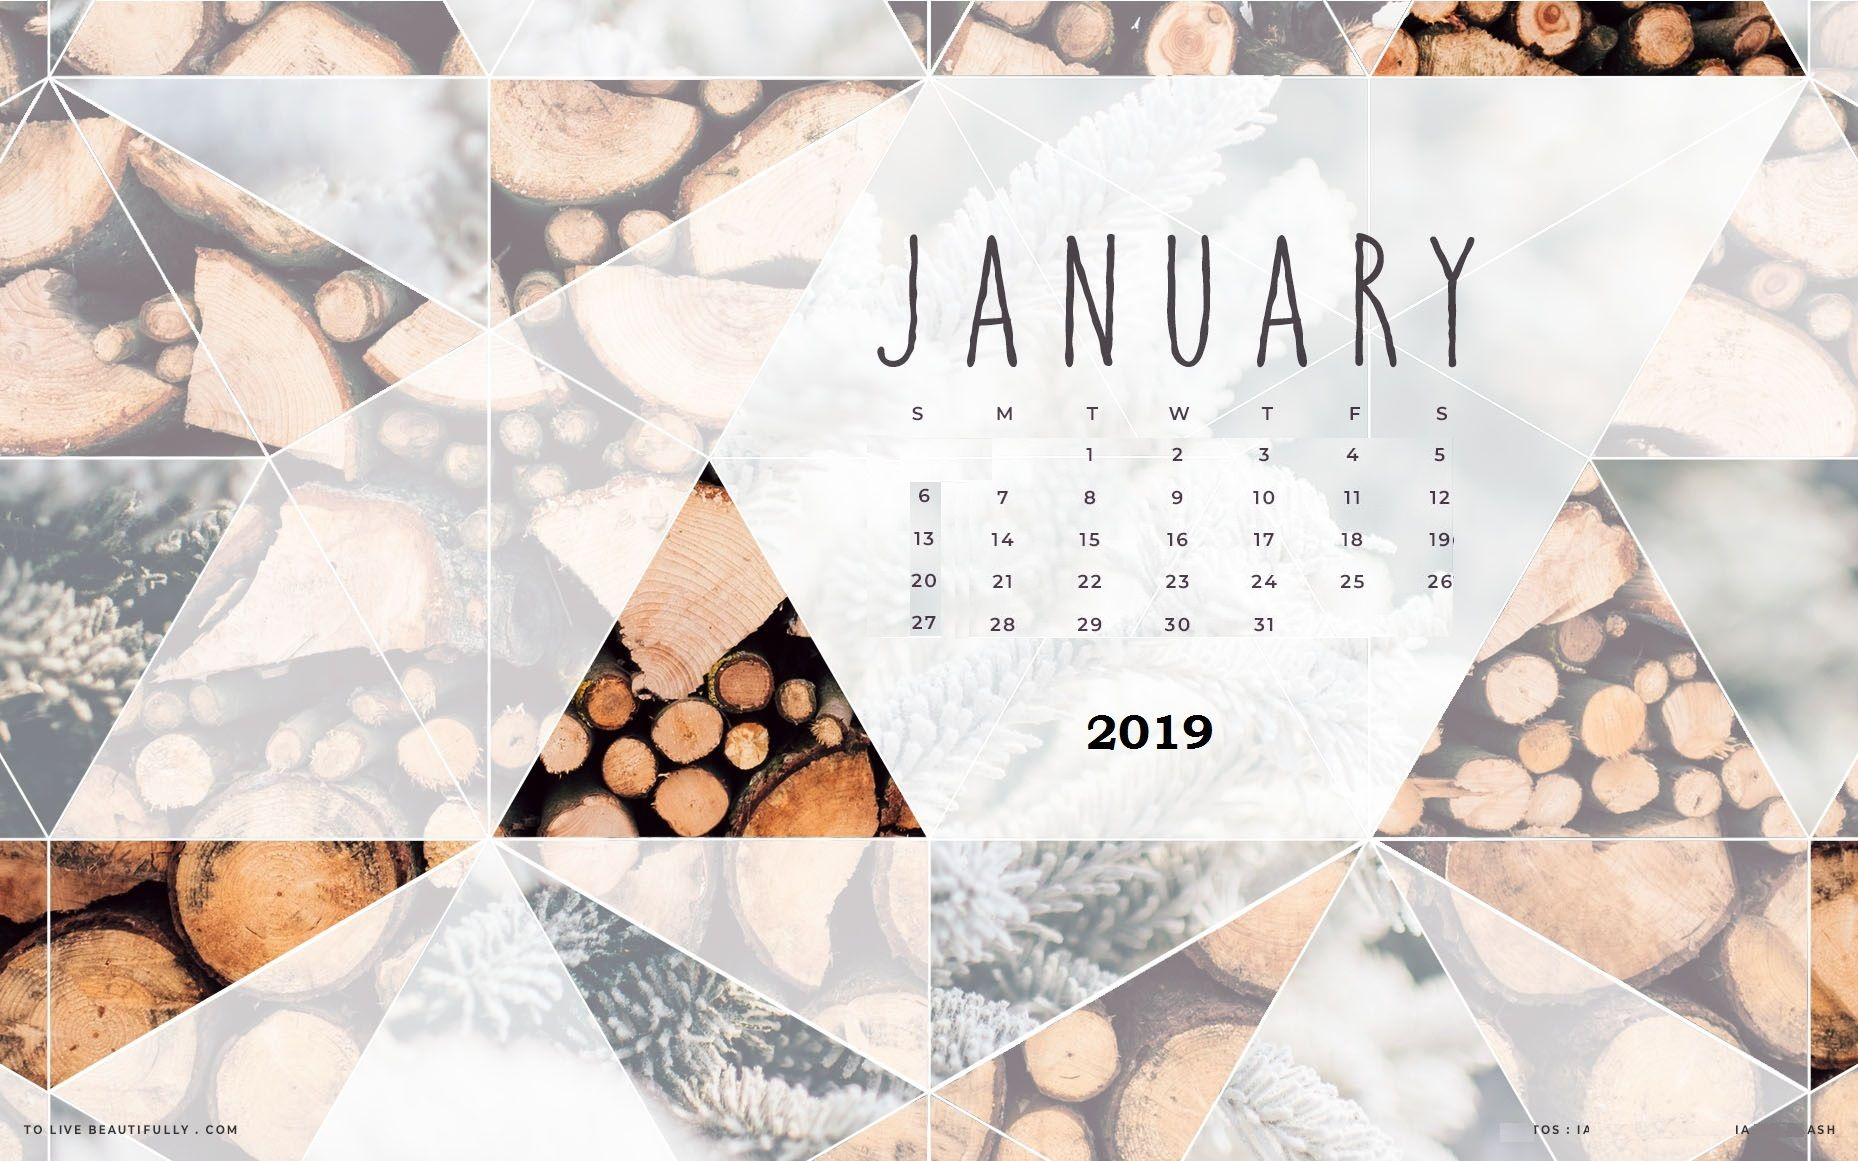 January 2019 Calendar Desktop Jan 2019 HD Wallpaper with Calendar | desktop wallpaper in 2019